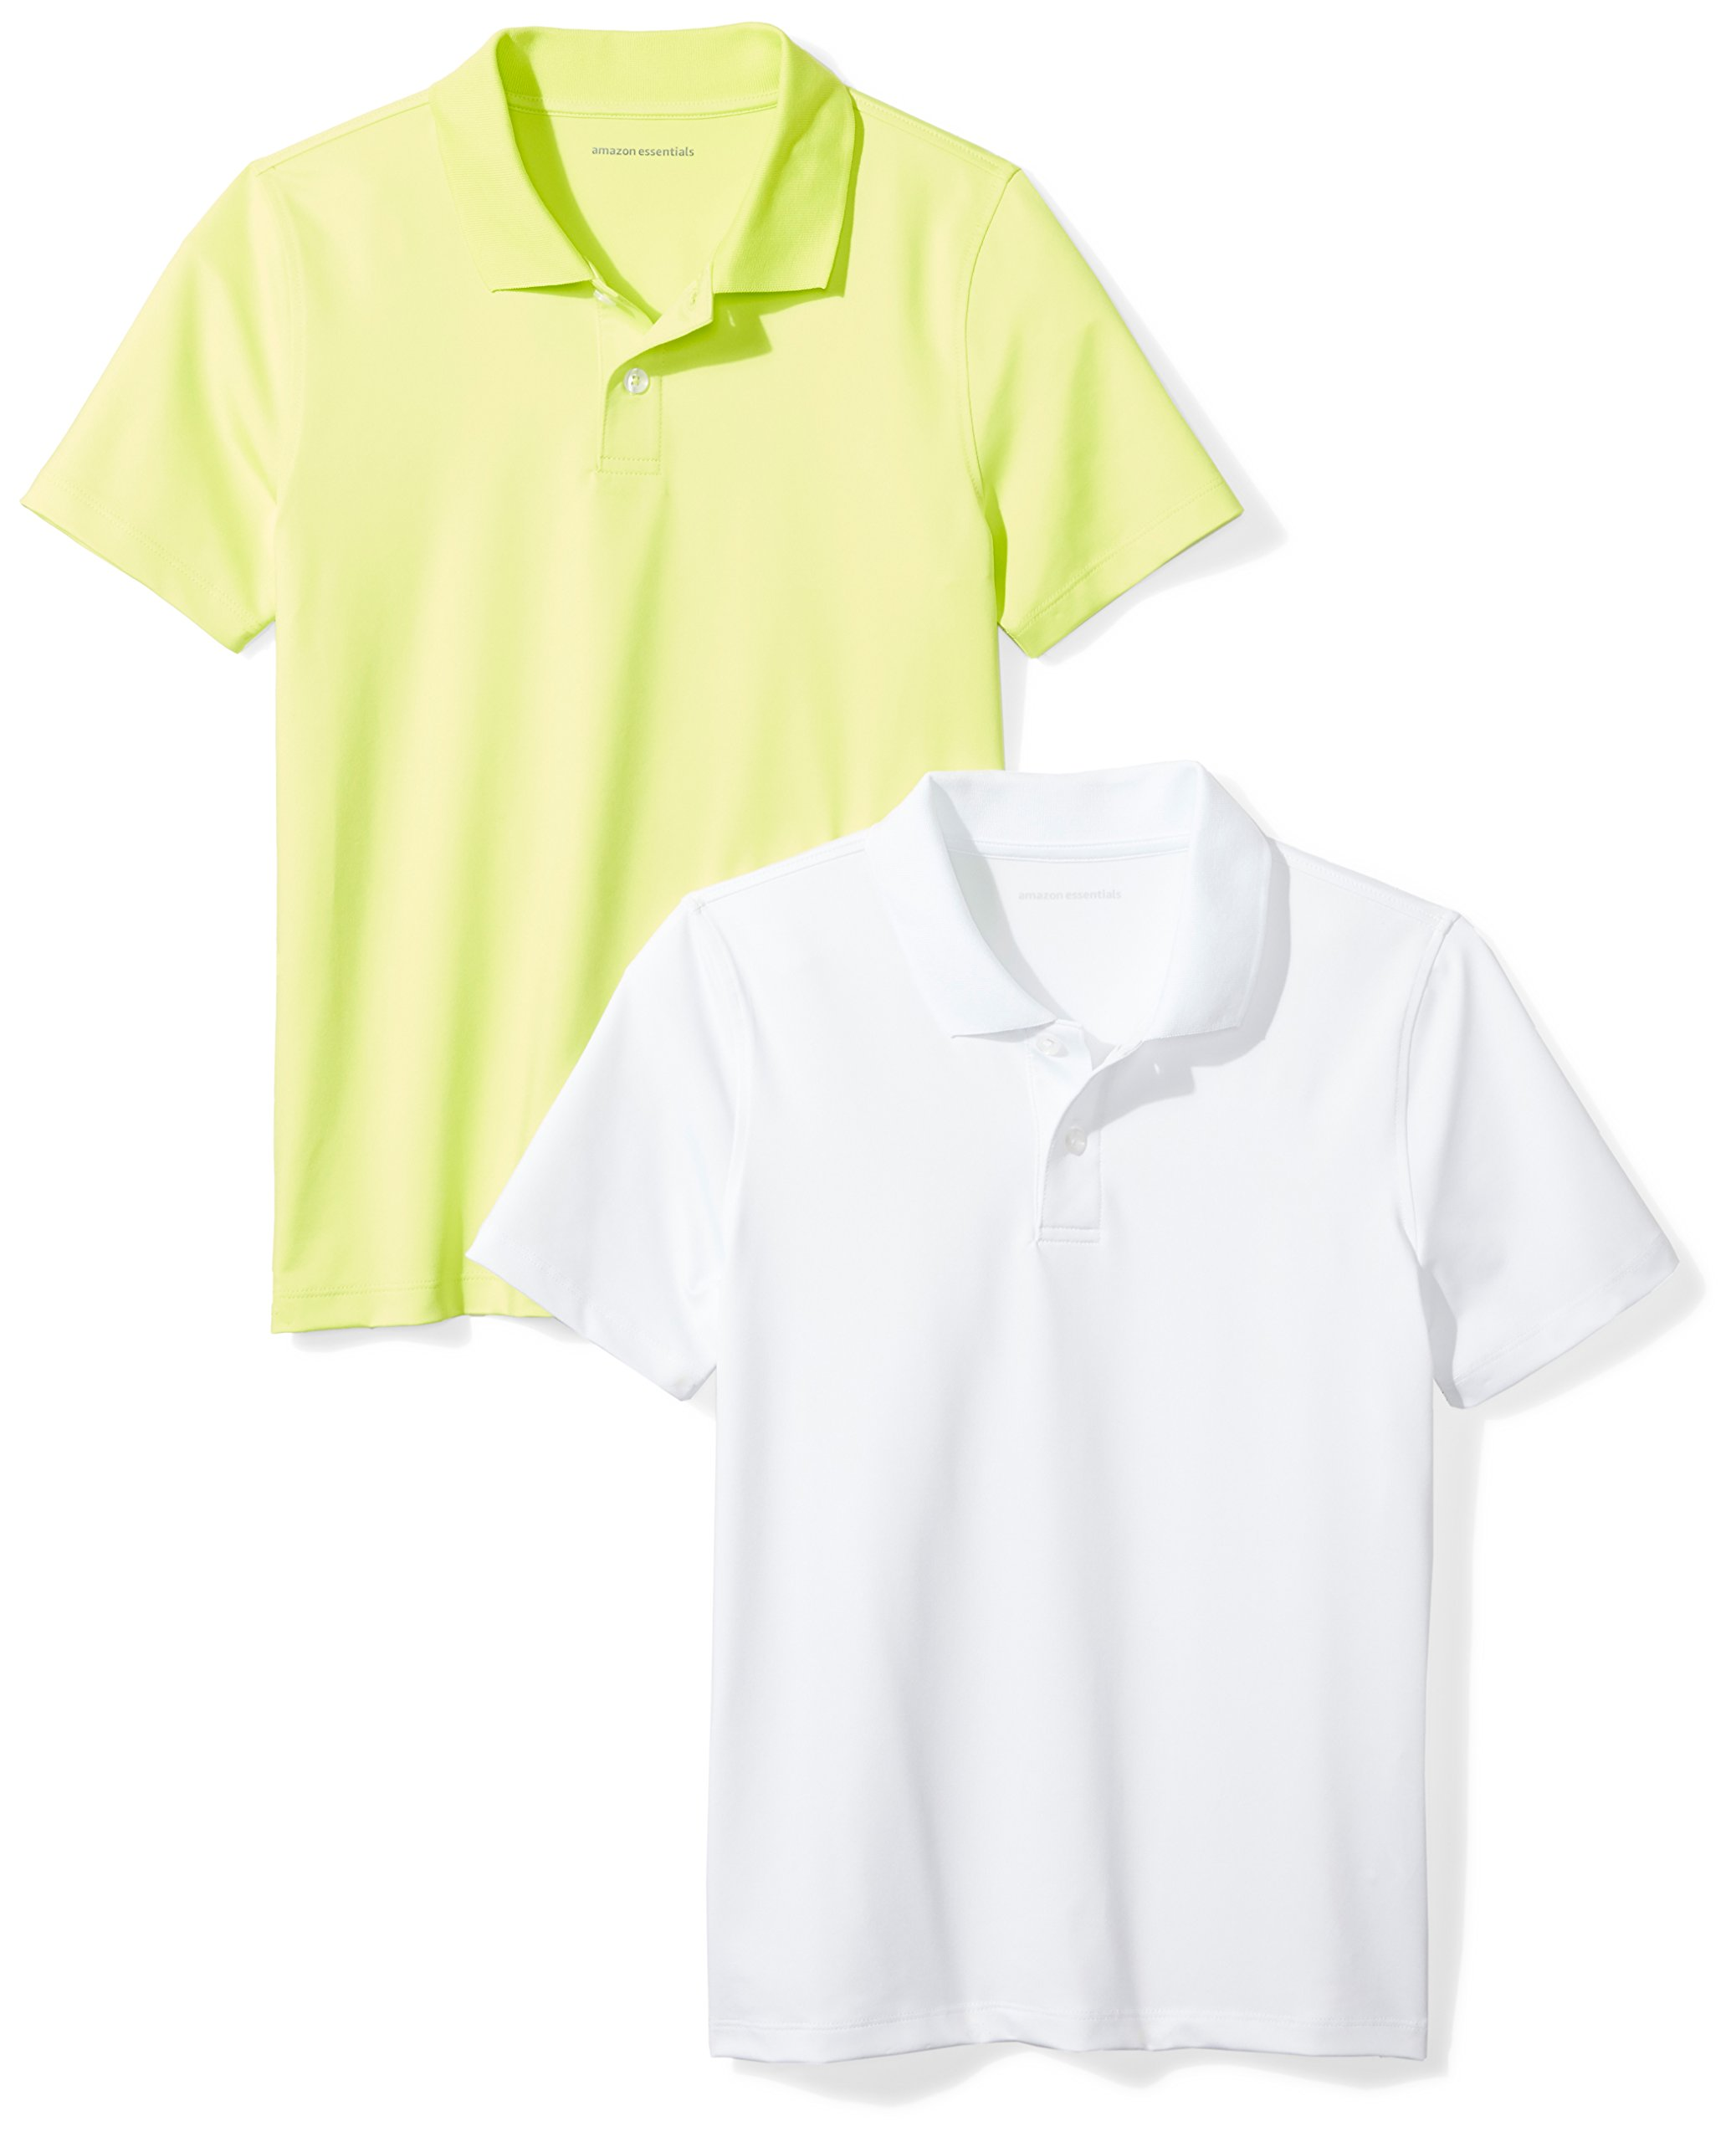 Amazon Essentials Toddler Boys' 2-Pack Performance Polo, Lime/White, 4T